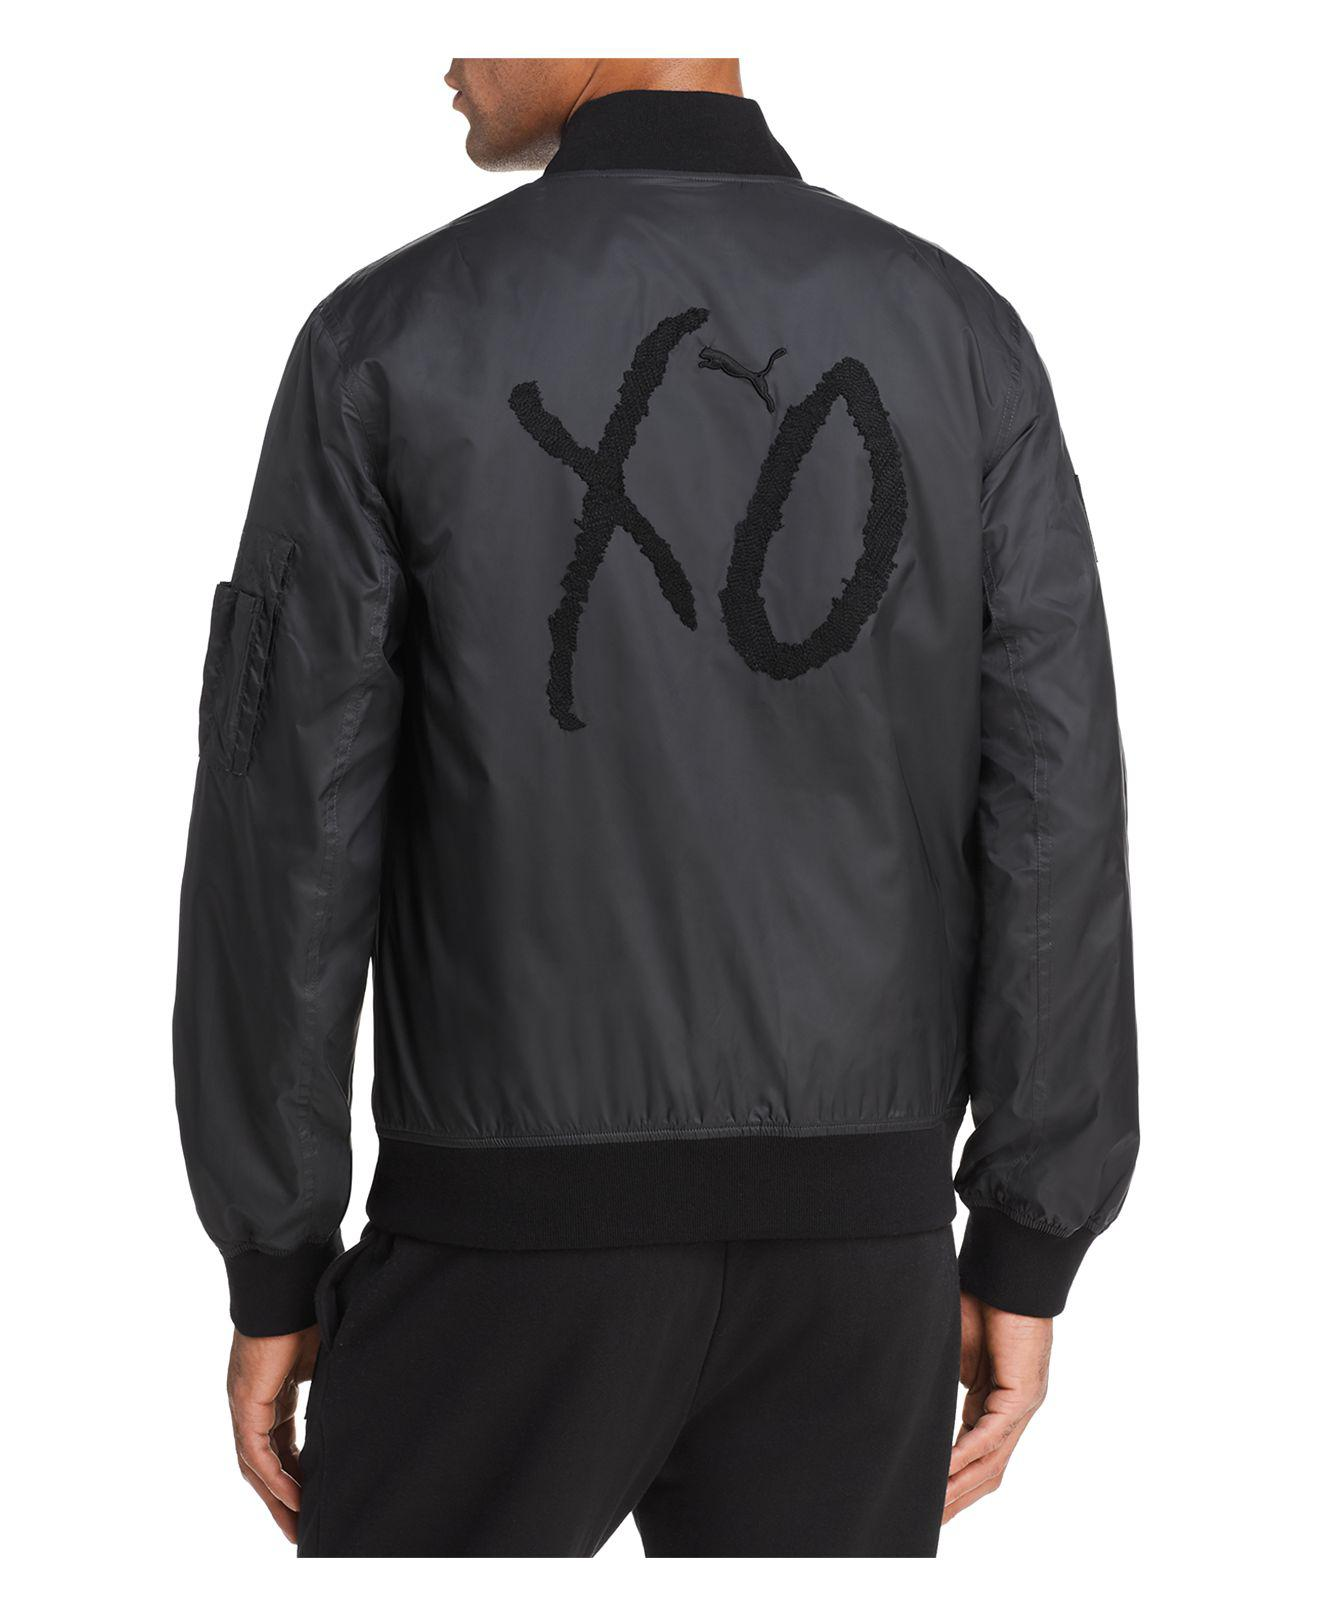 0e88cb6f7c73 Lyst - PUMA X Xo The Weeknd Bomber Jacket in Black for Men